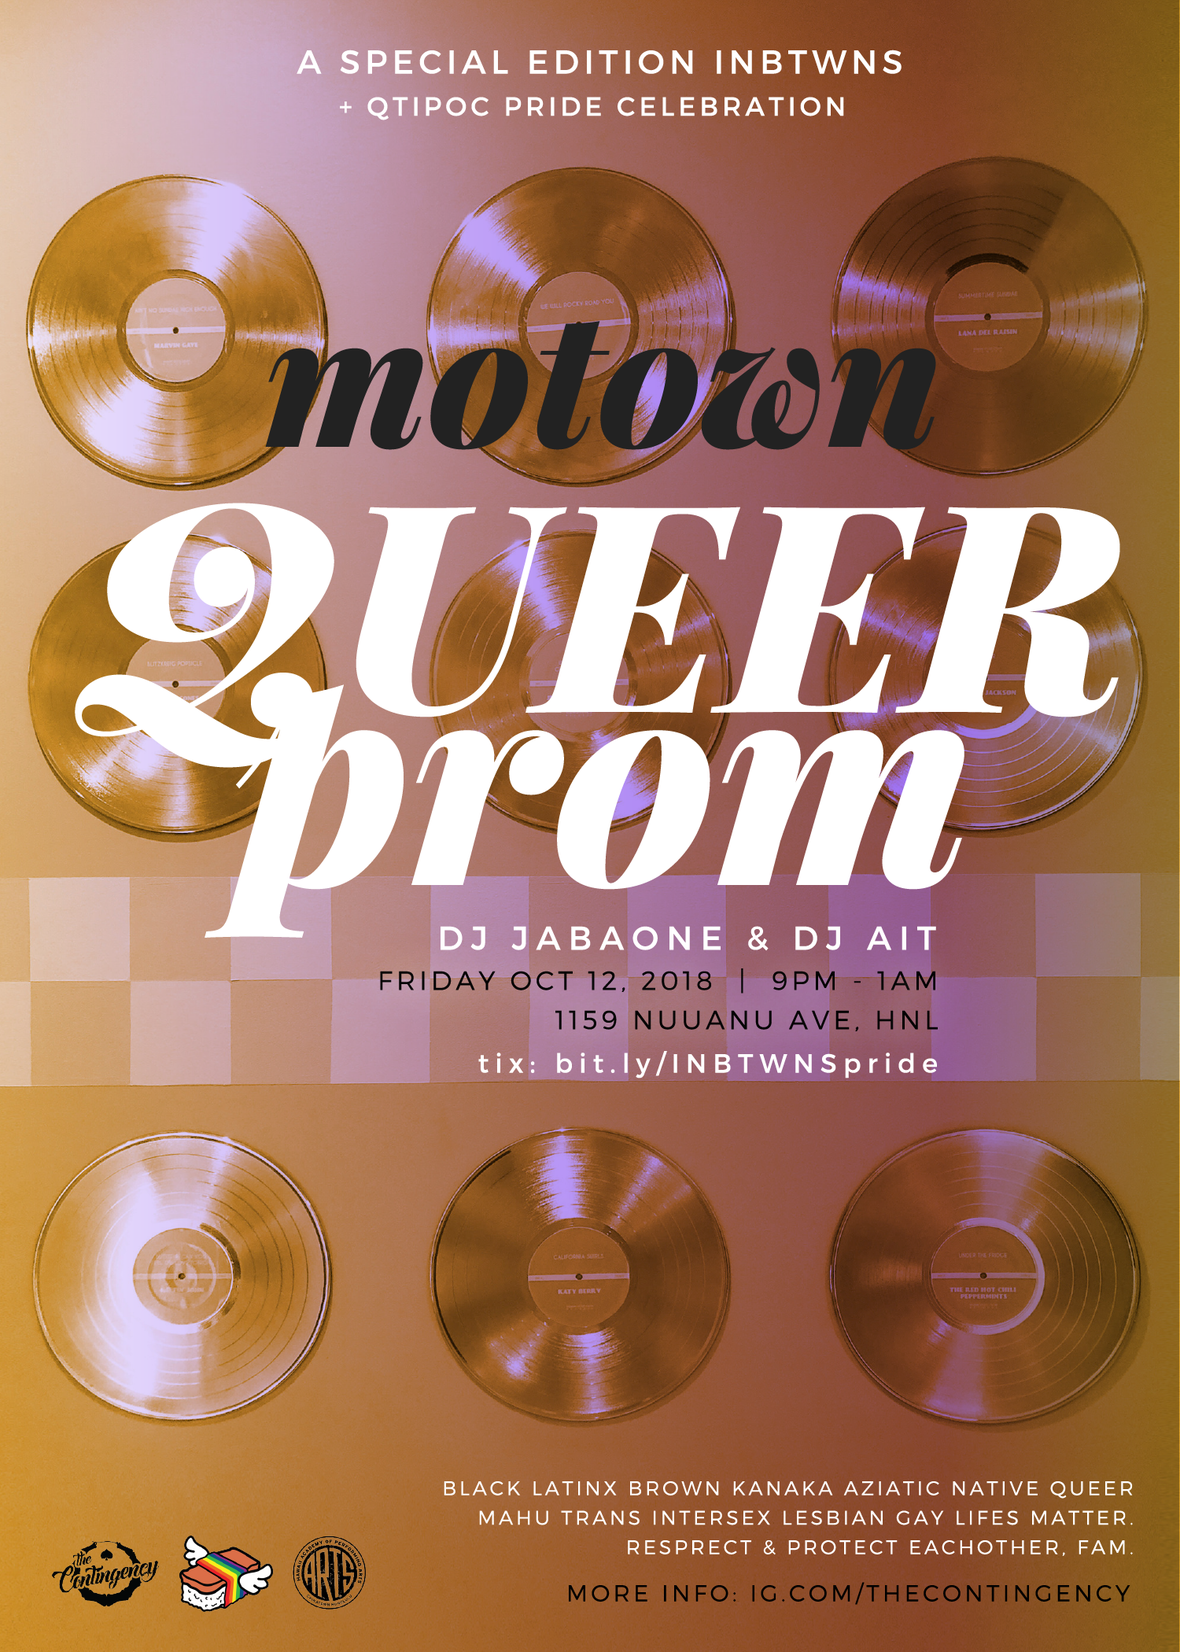 motown prom flyer-v2-01 - Openi Hsin Cheung